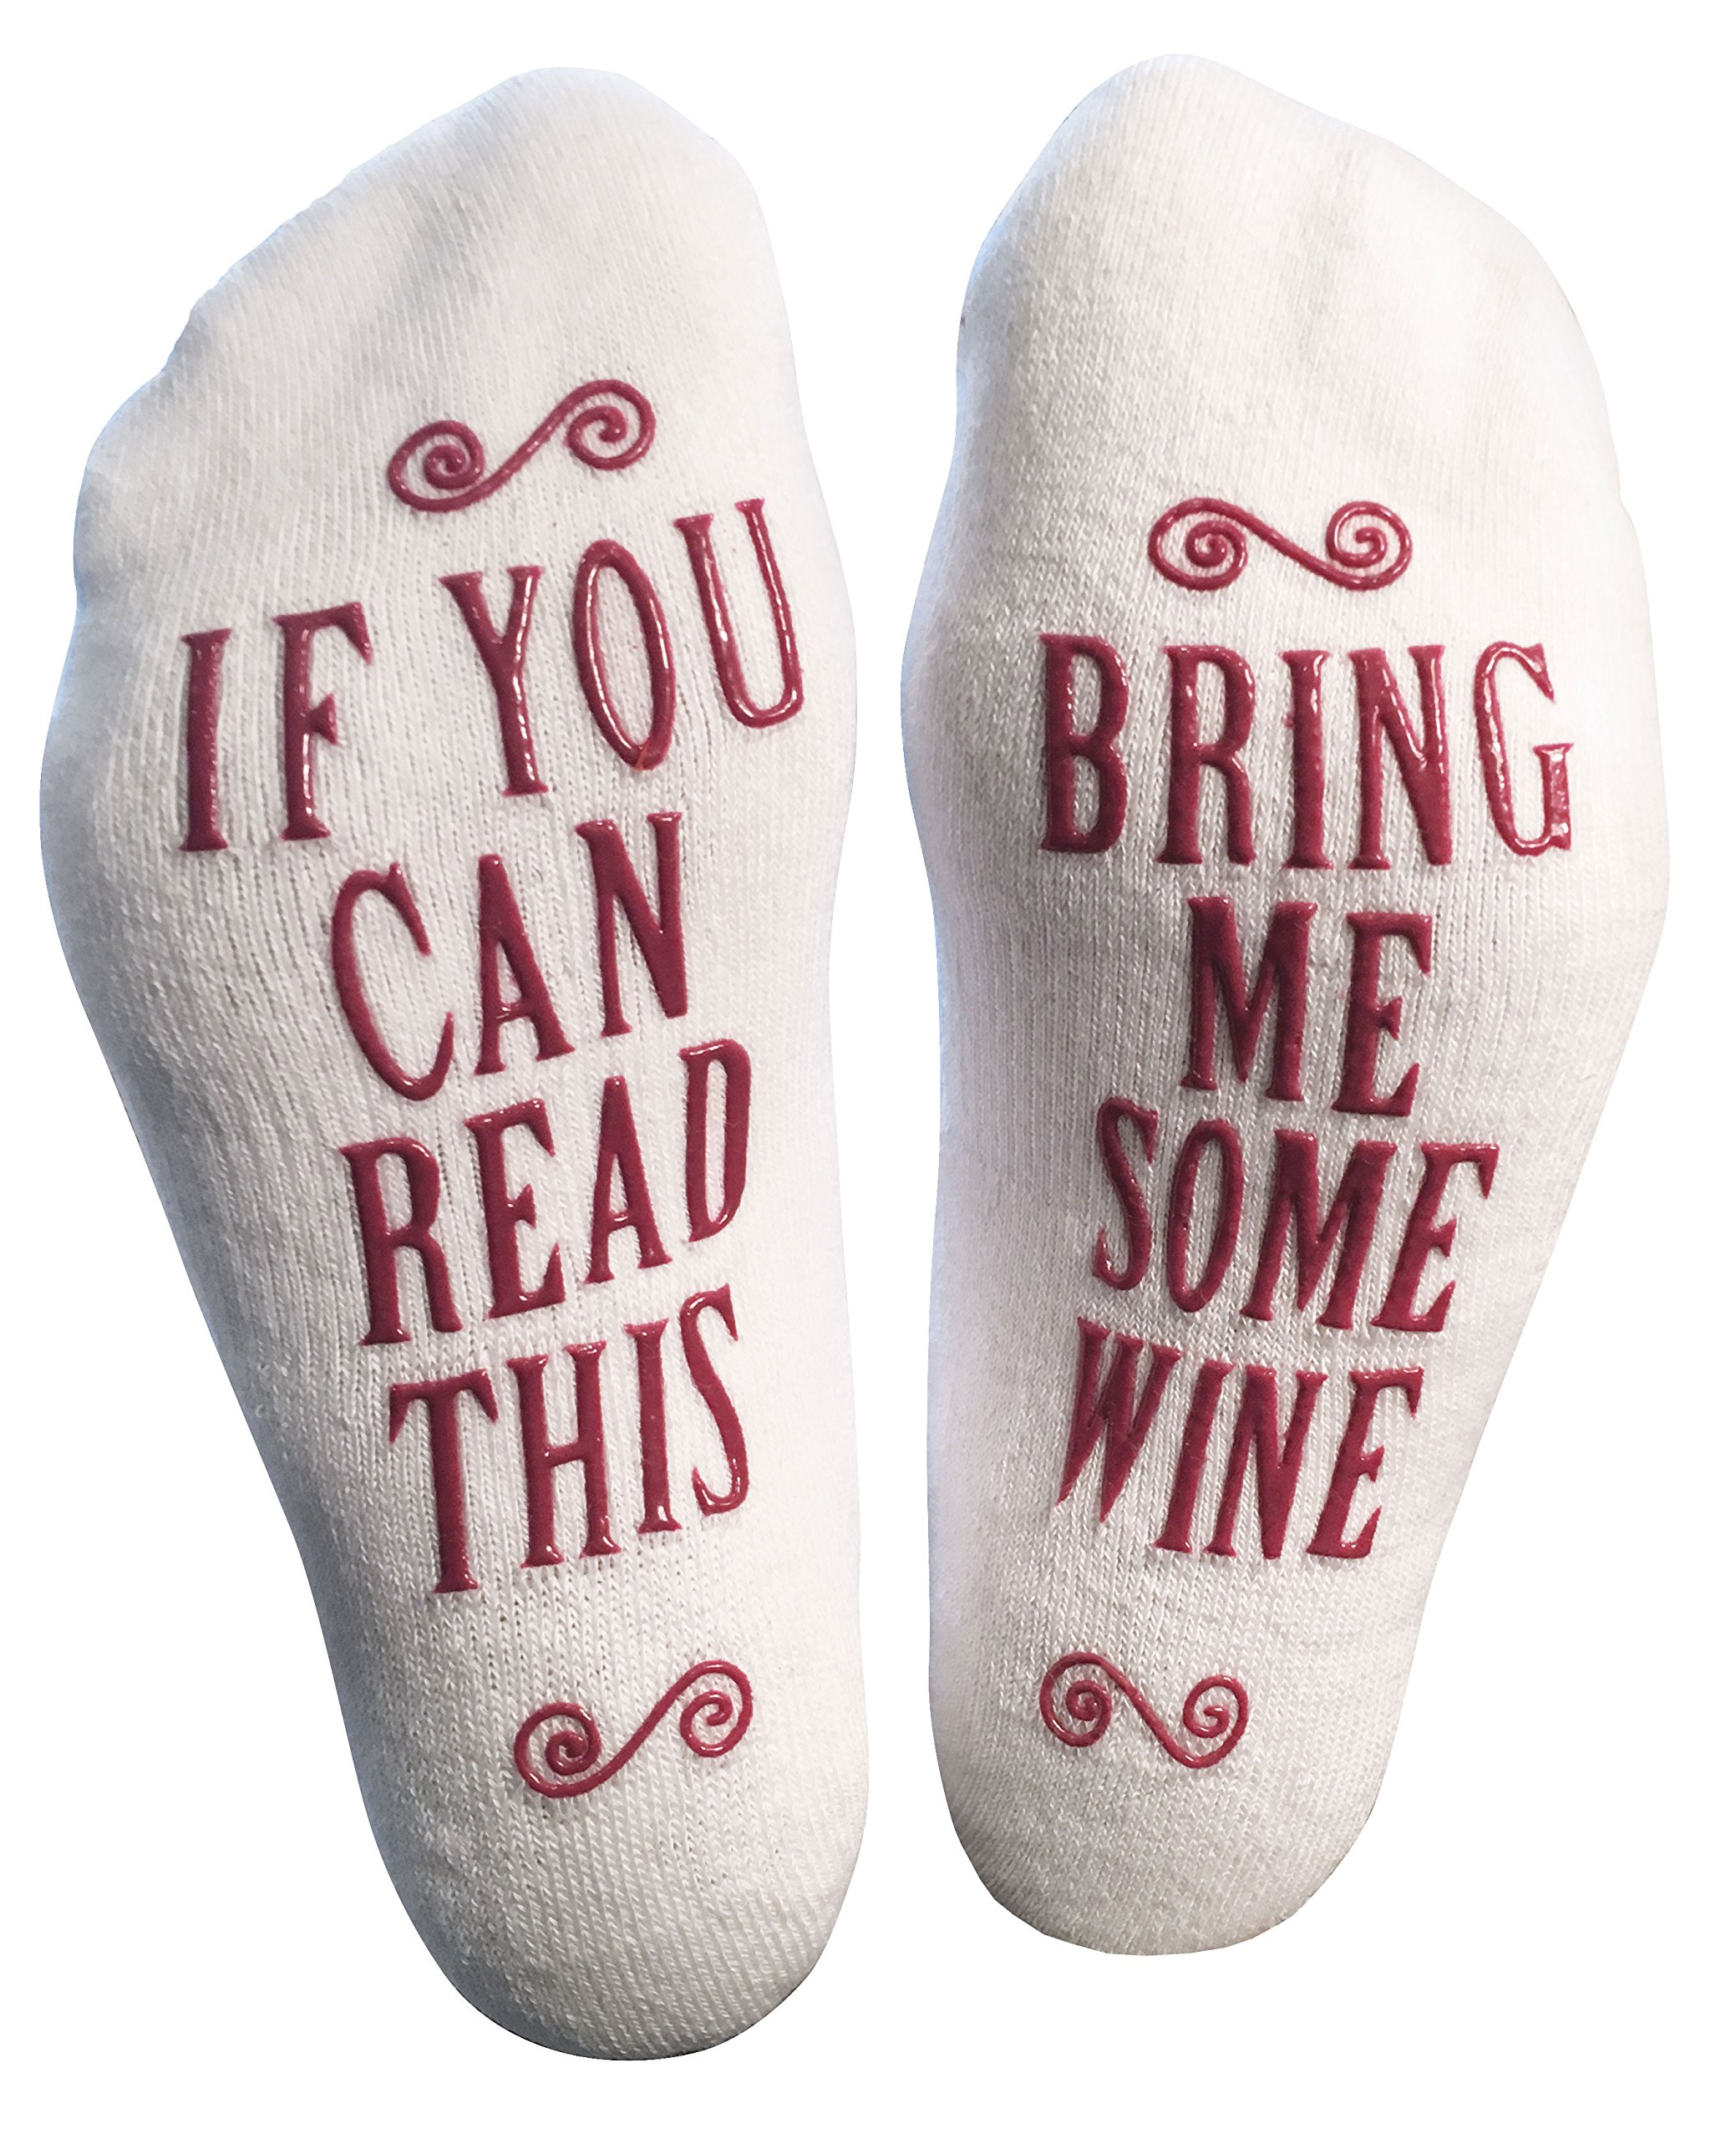 ''Bring Me Some Wine'' Luxury Combed Cotton Socks with Gift Box- Perfect Hostess or Housewarming Gift Idea for Women, Cute Present for Wine Lover, New Mom or Wife - By Haute Soiree